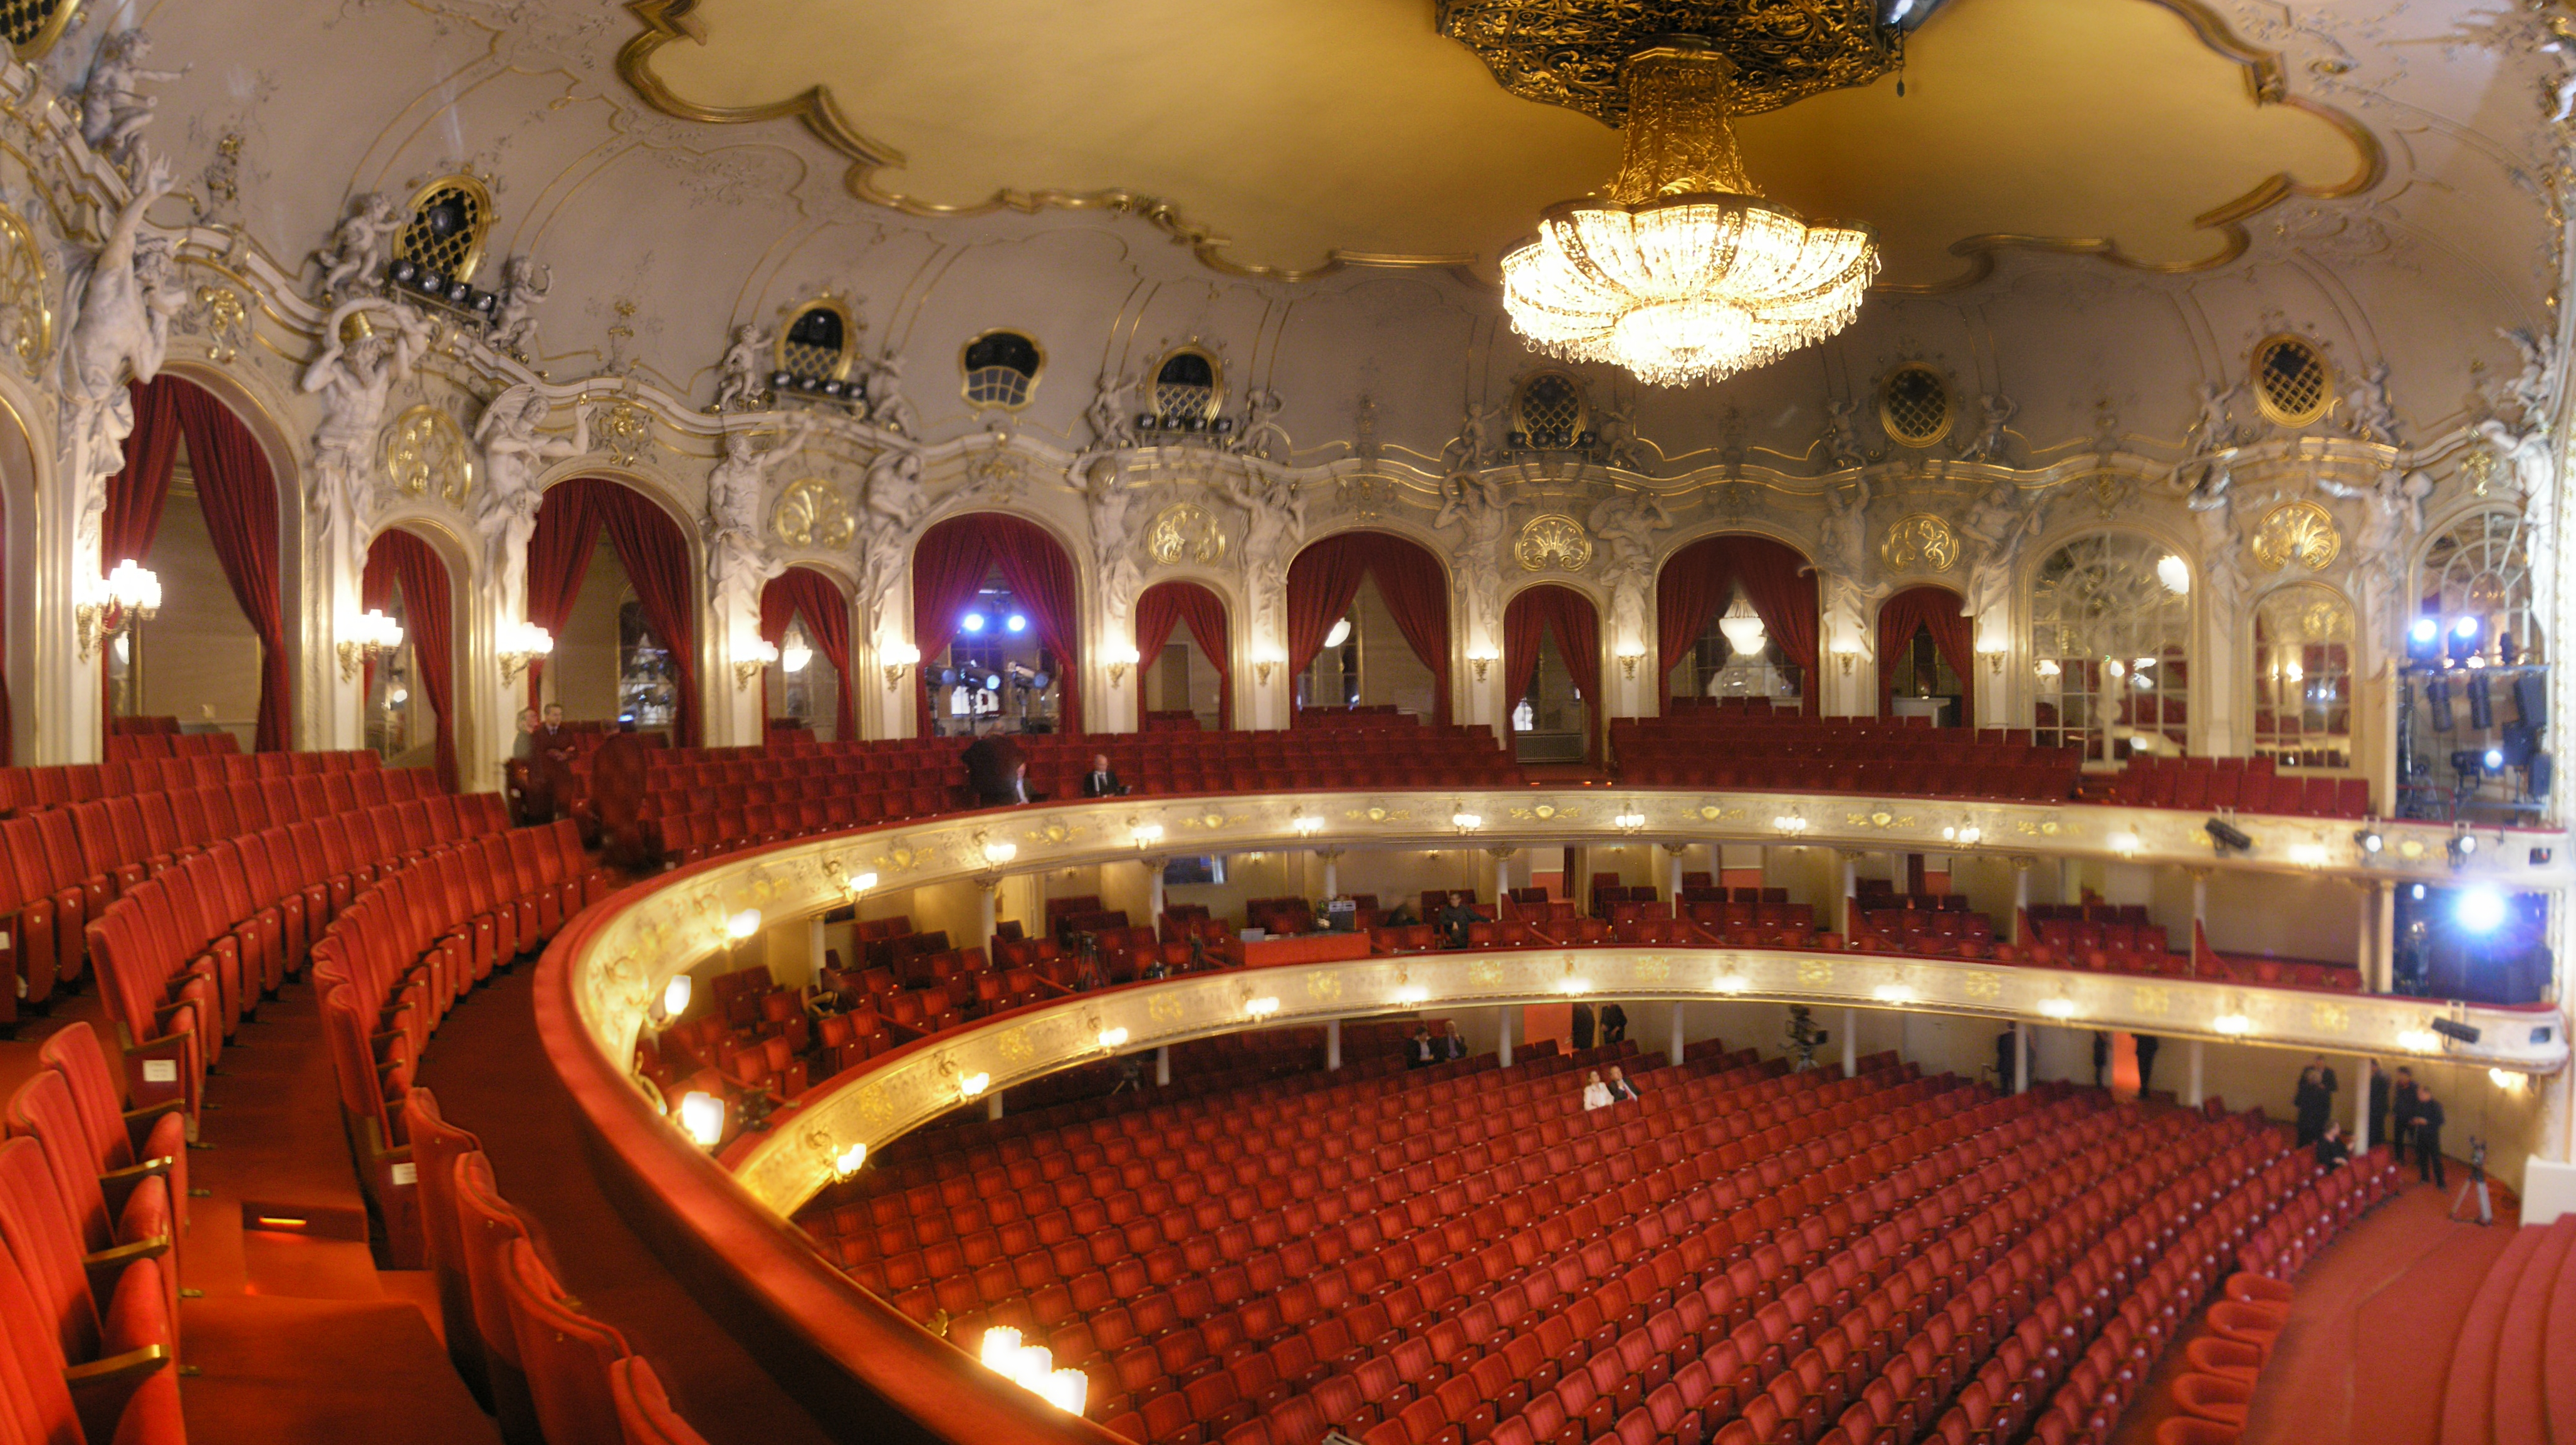 Description komische oper berlin interior oct 2007 zuschauerraum jpg